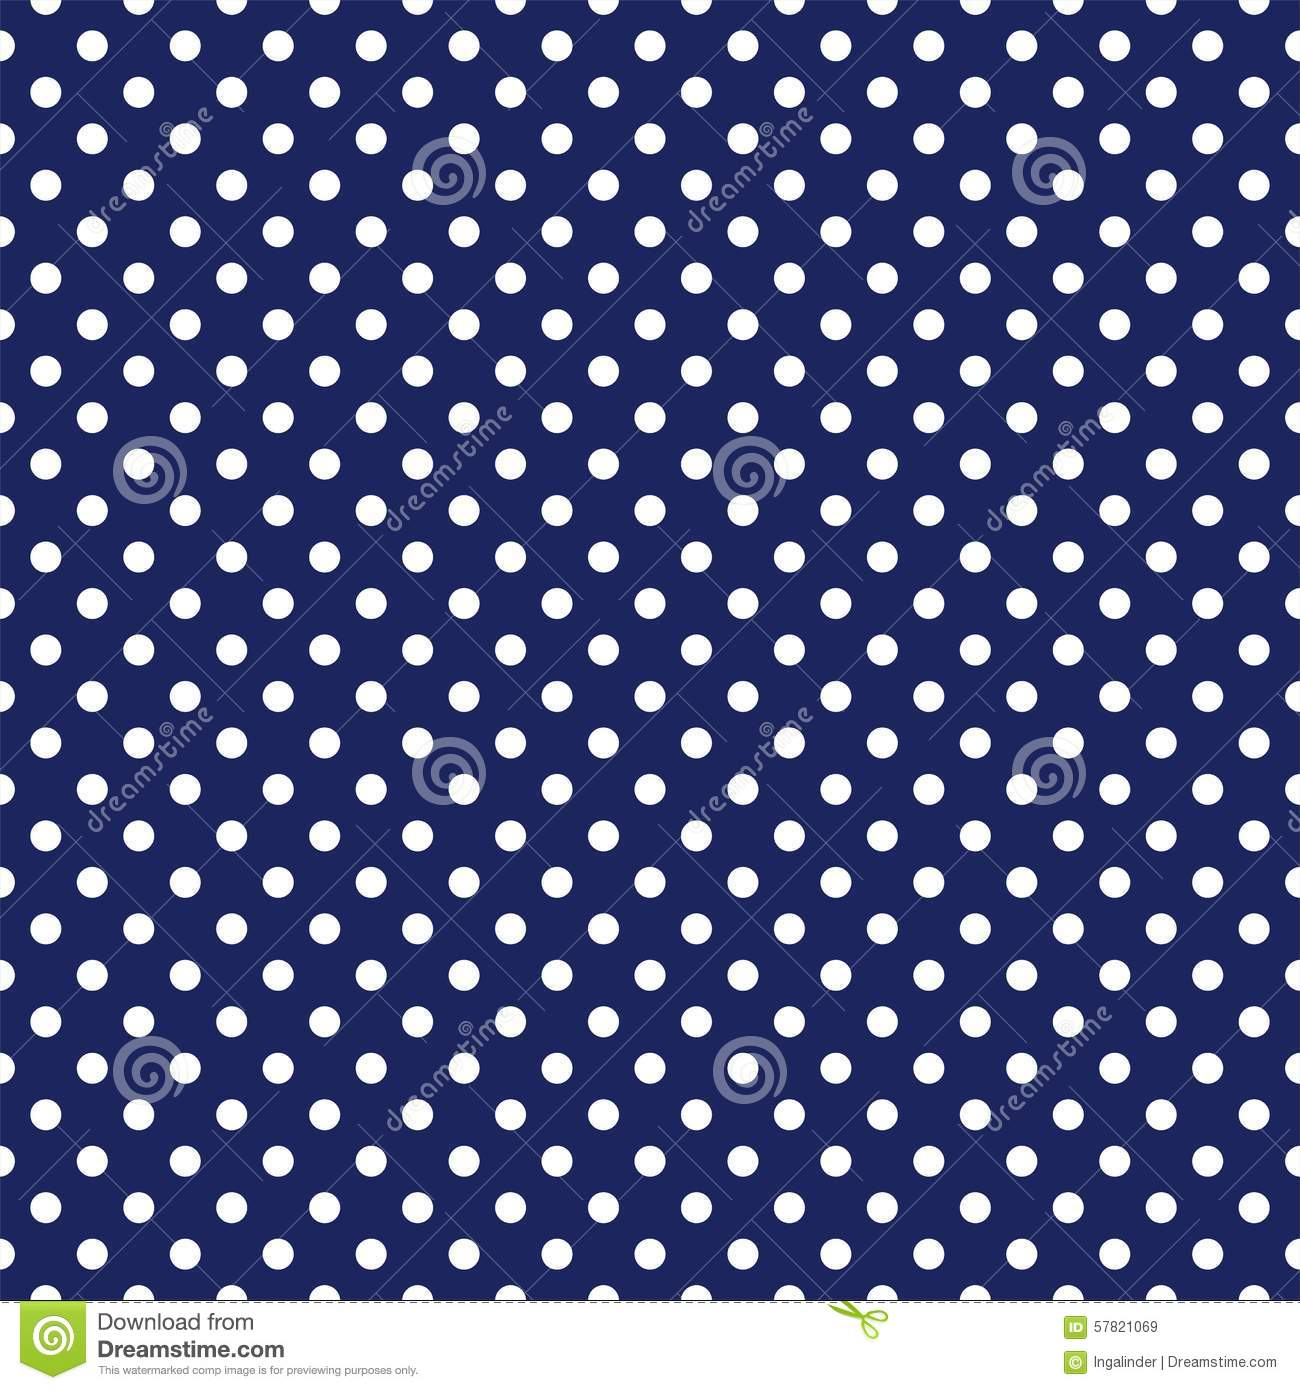 Vector Navy And Pastels Spring Flowers Seamless Repeat